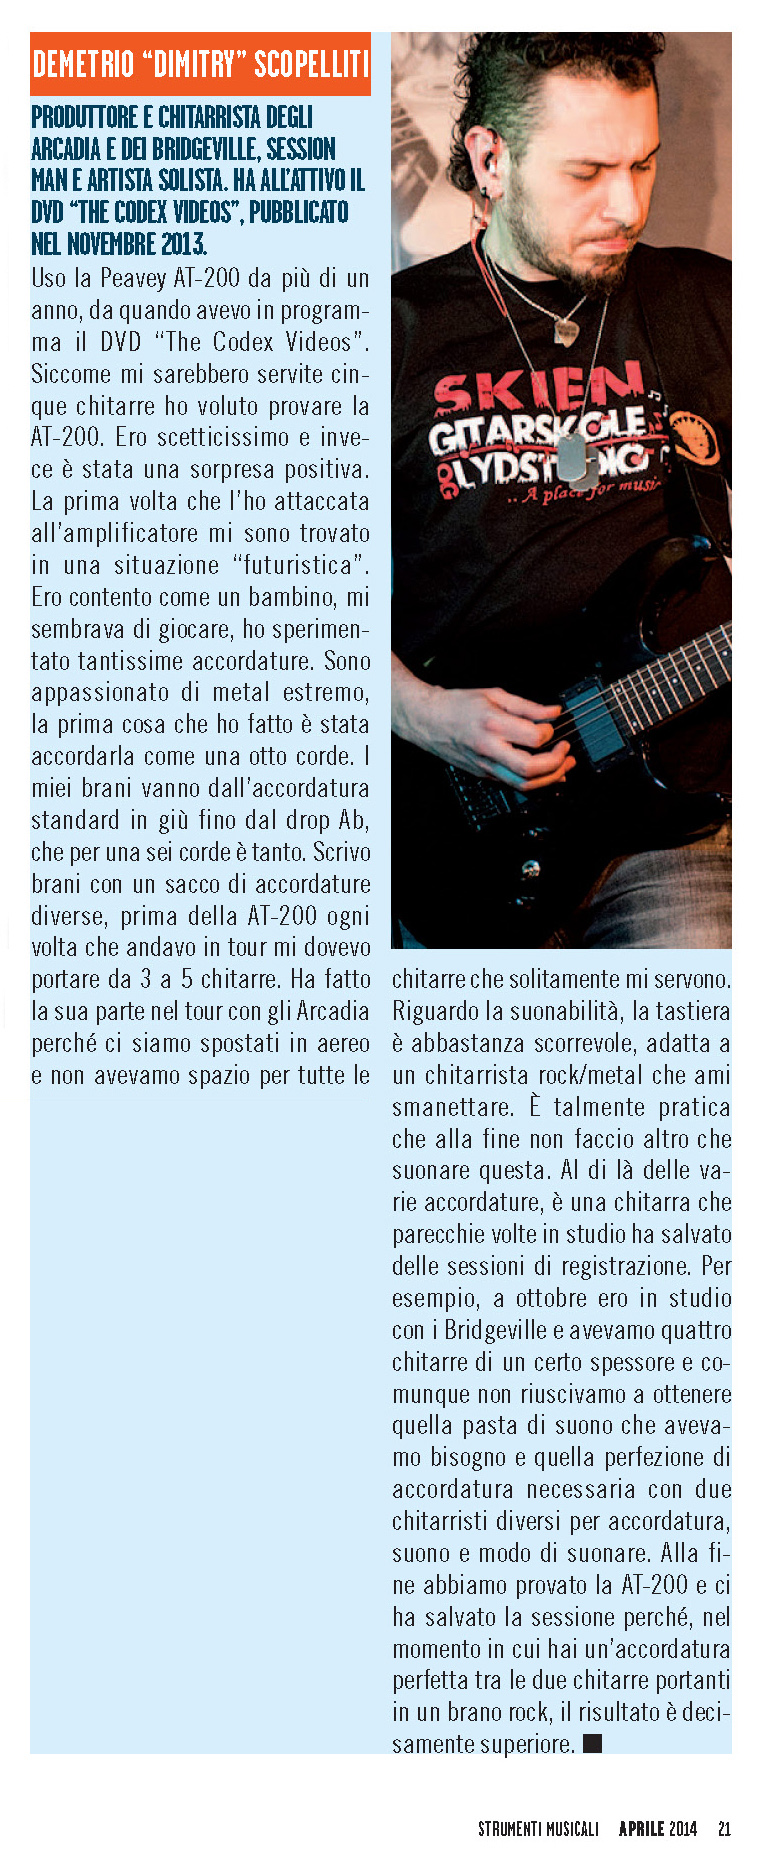 Interview with Demetrio 'Dimitry' Scopelliti on ST<br>RUMENTI MUSICALI (p. 21) - April 2014